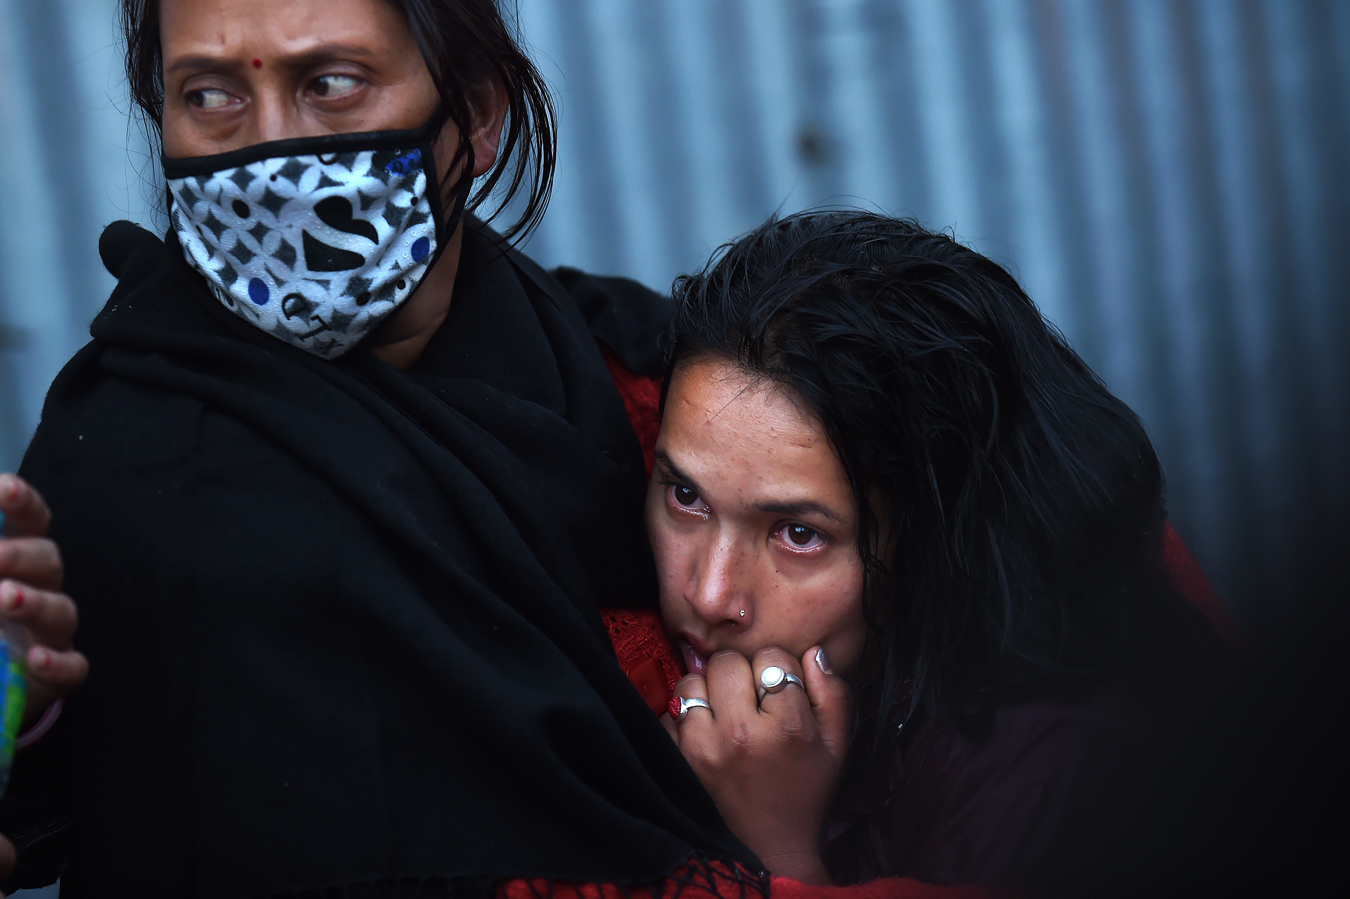 Babita Bhandani, right, mourns her brother, an earthquake victim during his funeral pyre at a Hindu temple on Wednesday April 29, 2015 in Kathmandu, Nepal. A deadly earthquake there has killed thousands. (Photo by Matt McClain/ The Washington Post)